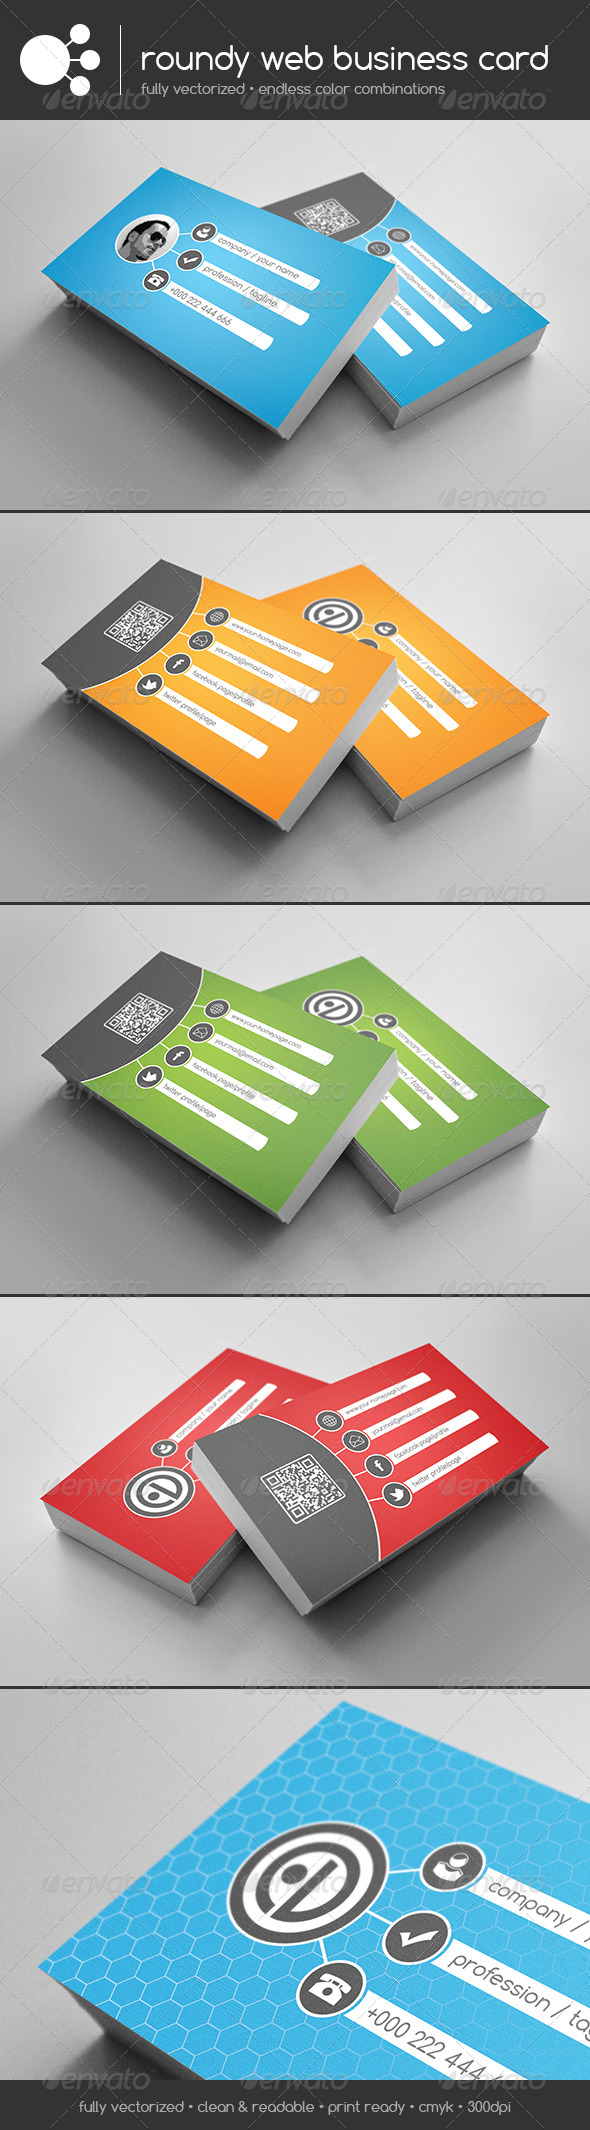 GraphicRiver Roundy Web Business Card 5852968